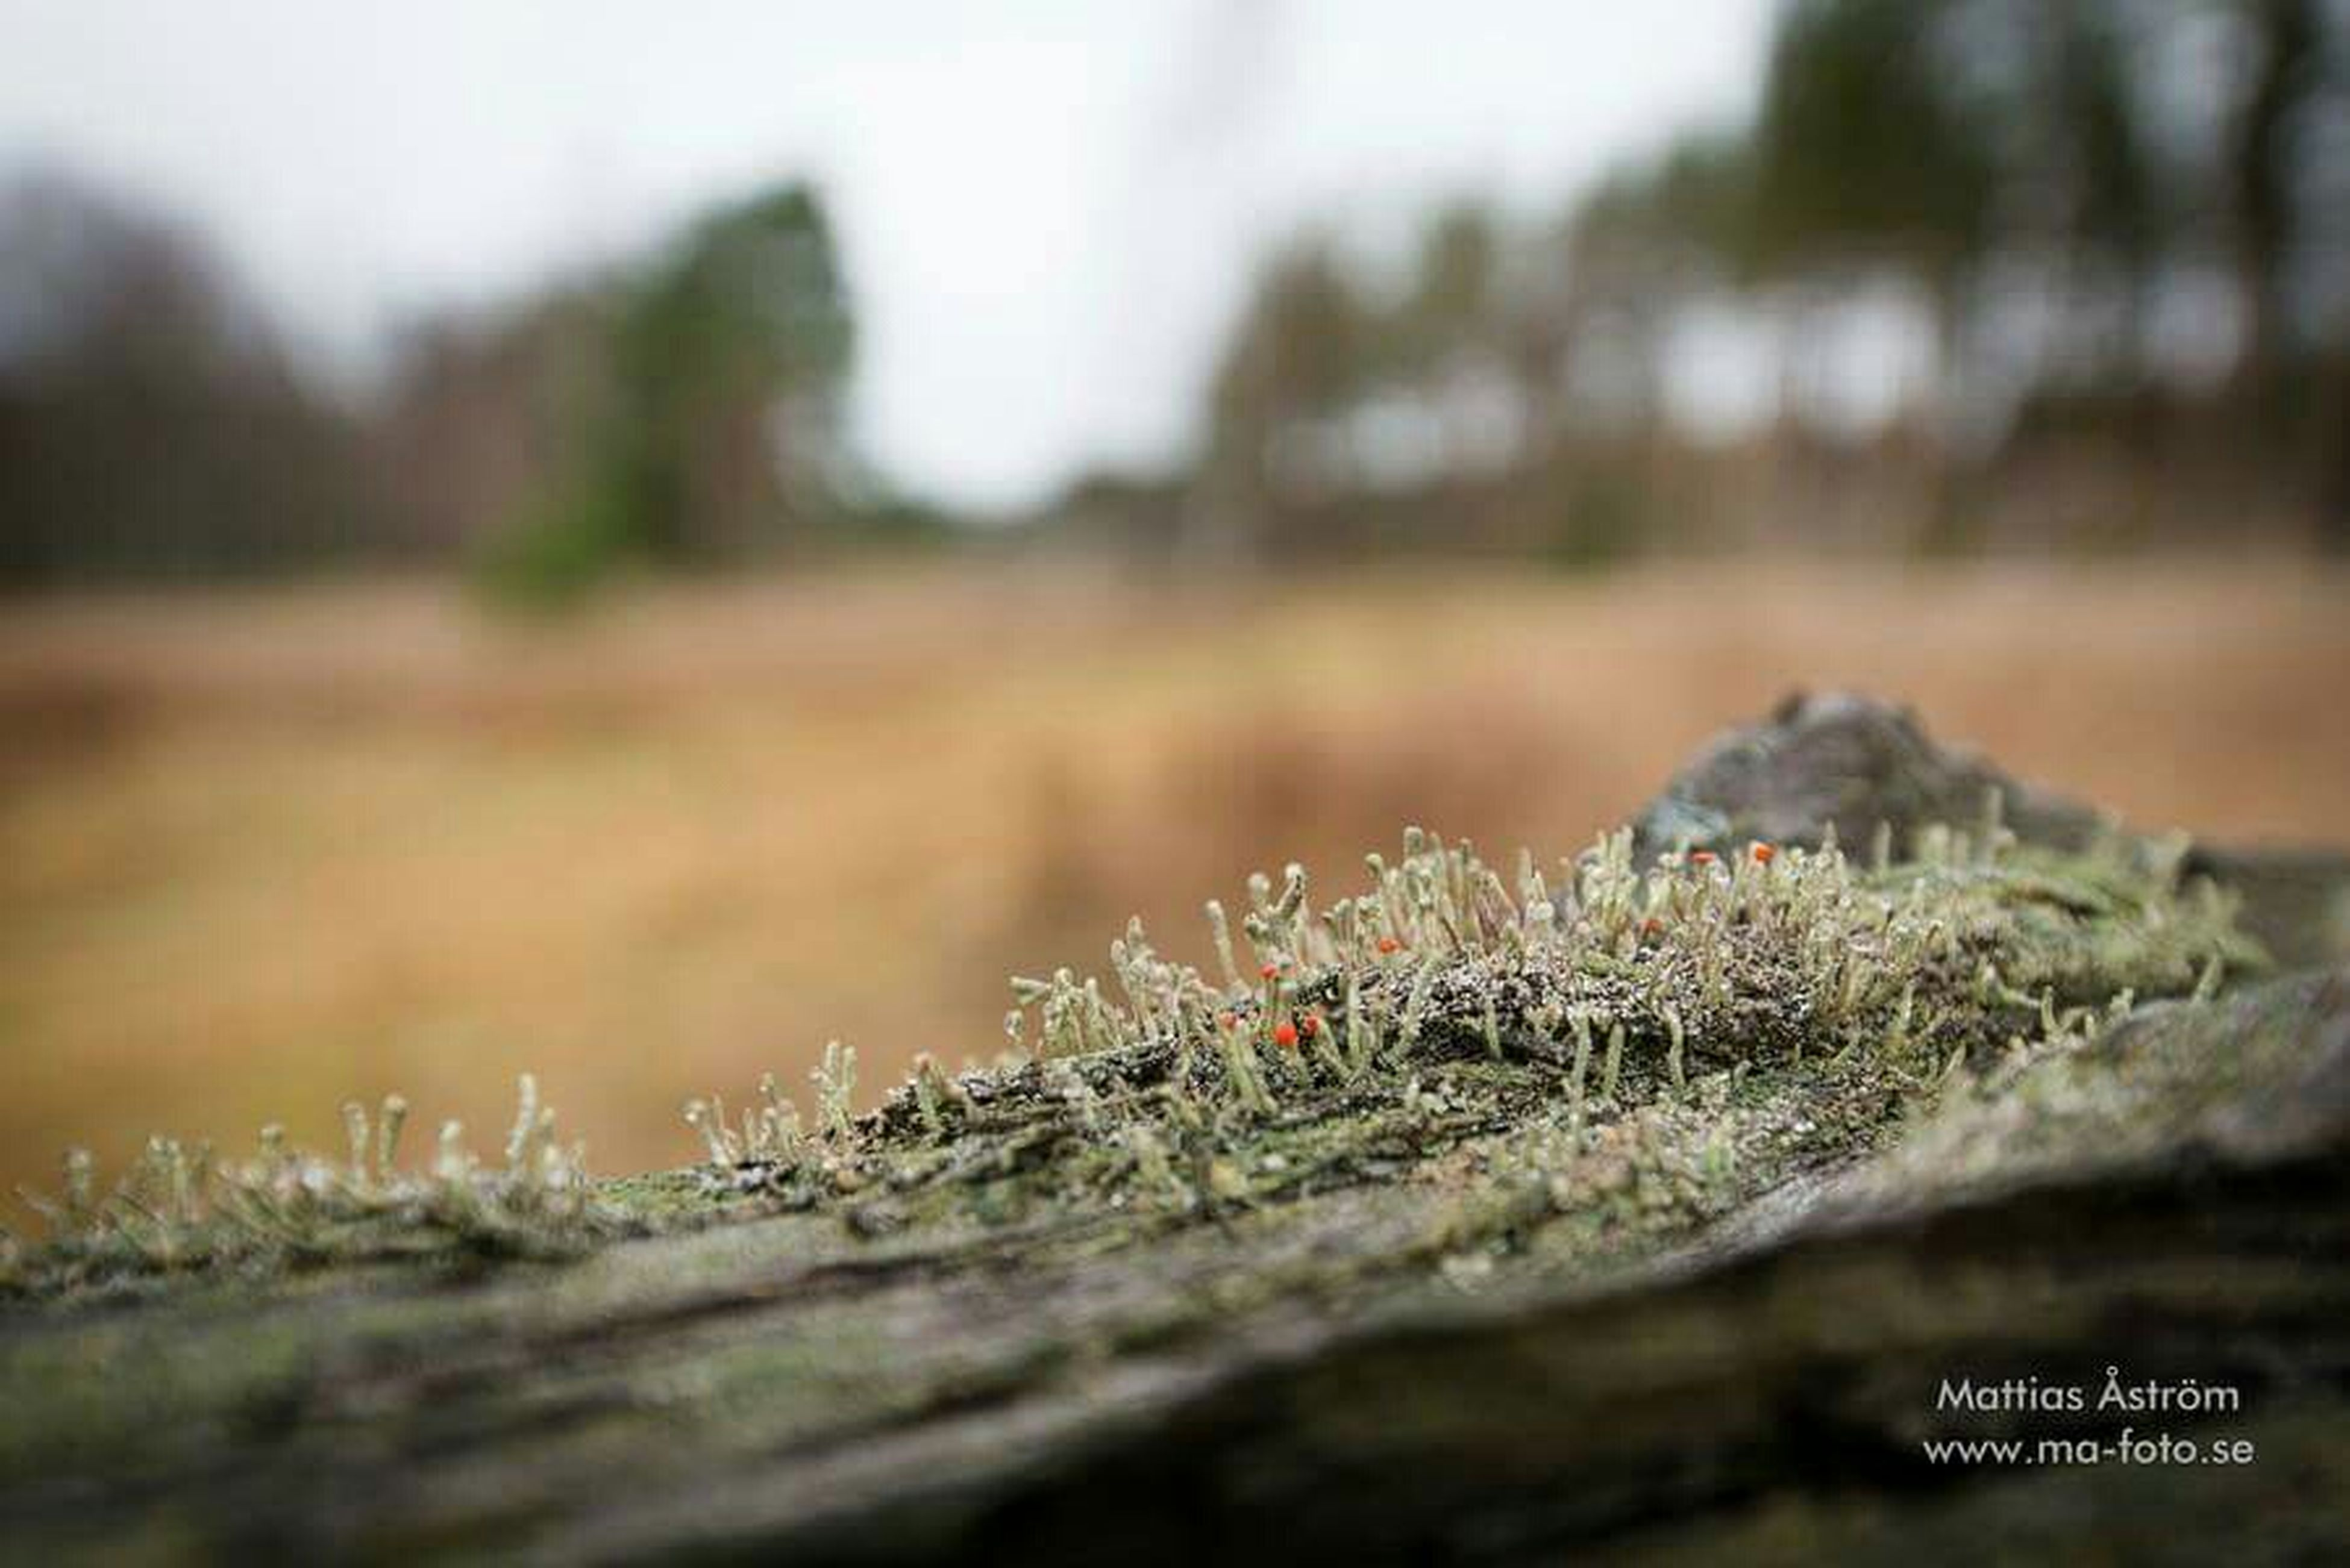 selective focus, focus on foreground, grass, close-up, field, nature, plant, growth, surface level, outdoors, day, landscape, tranquility, no people, tree, focus on background, beauty in nature, grassy, non-urban scene, growing